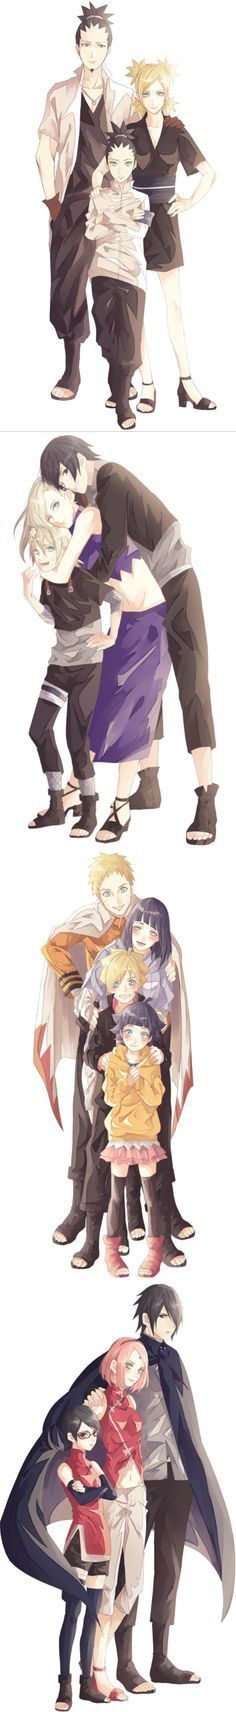 The best part is that this artist draws every single one of them so in character. ShikaTema + Shikadai, SaiIno + Inojin, NaruHina + Boruto + Himawari, SasuSaku + Sarada #naruto